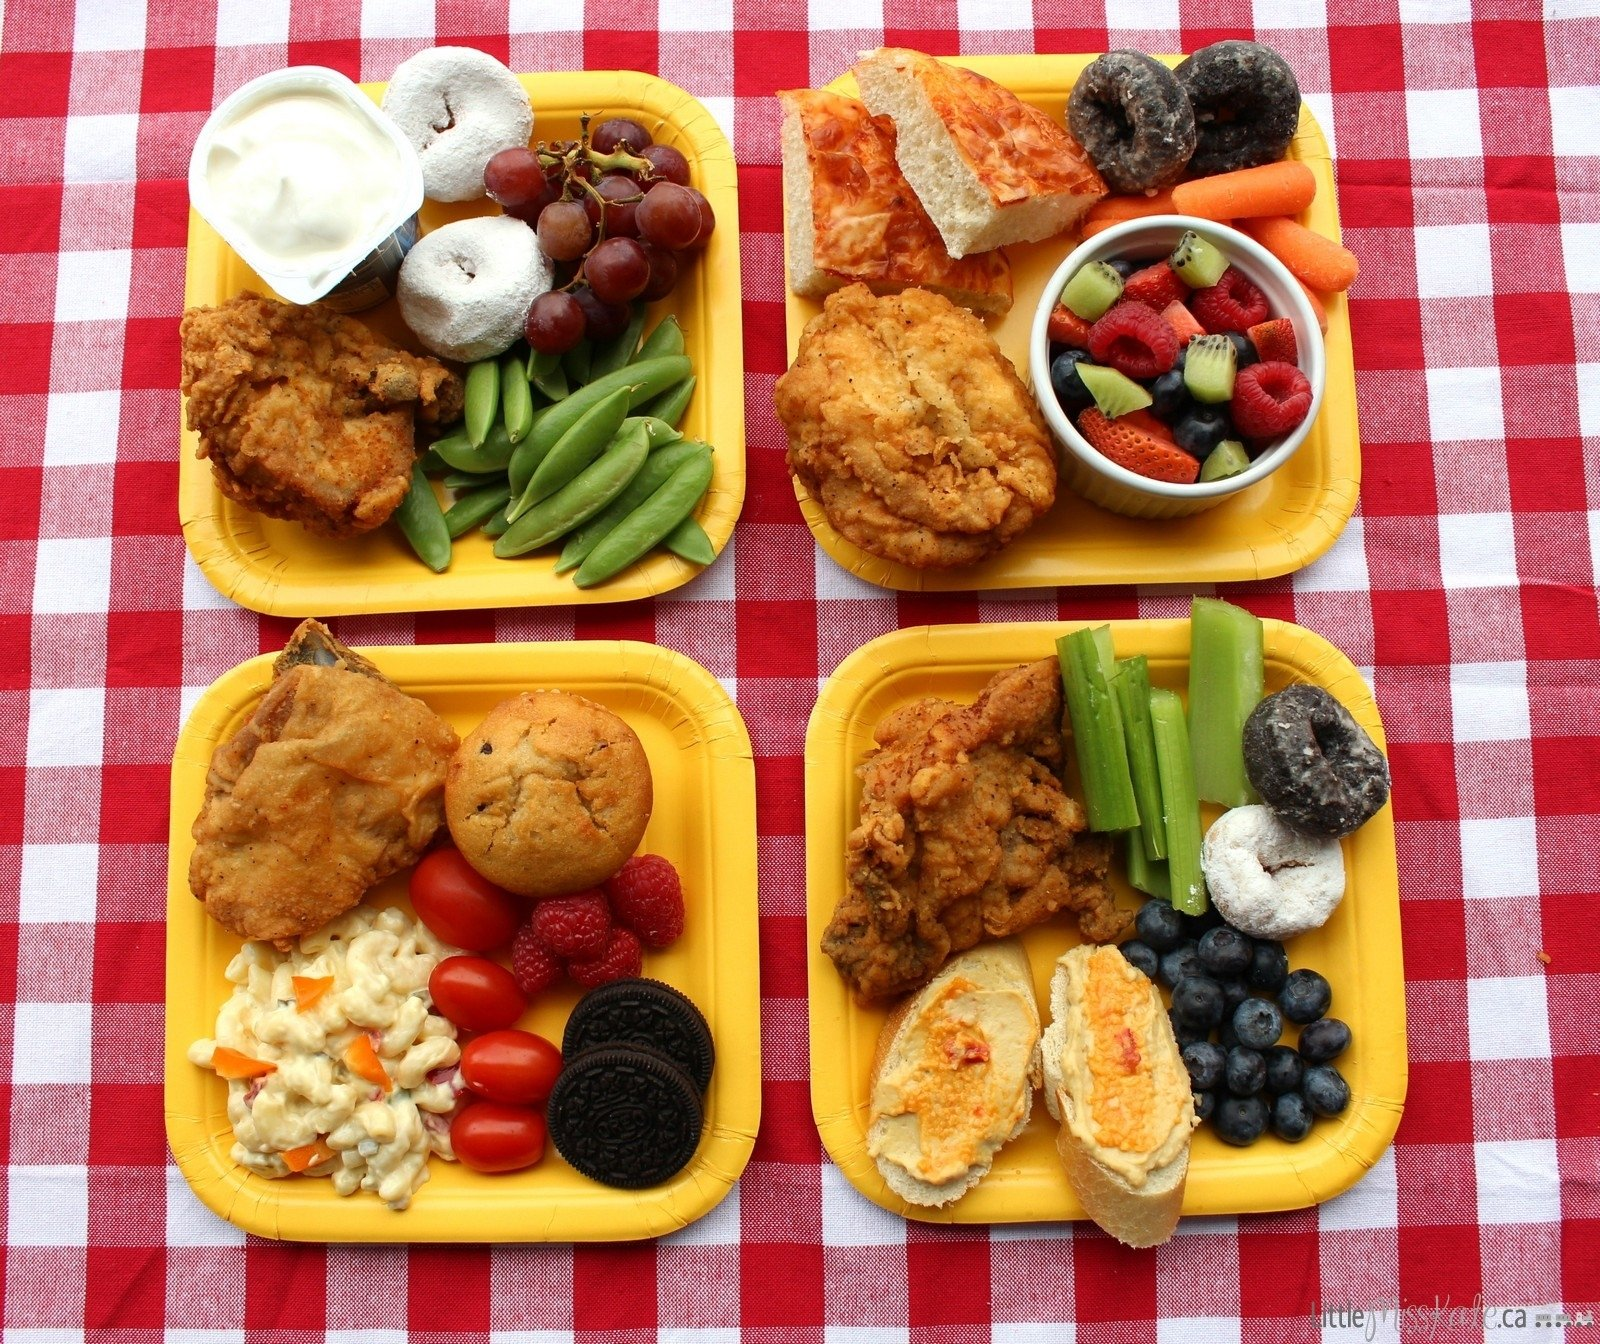 10 Pretty Picnic Food Ideas For Kids easy store bought 5 minute picnic meal ideas little miss kate 2020